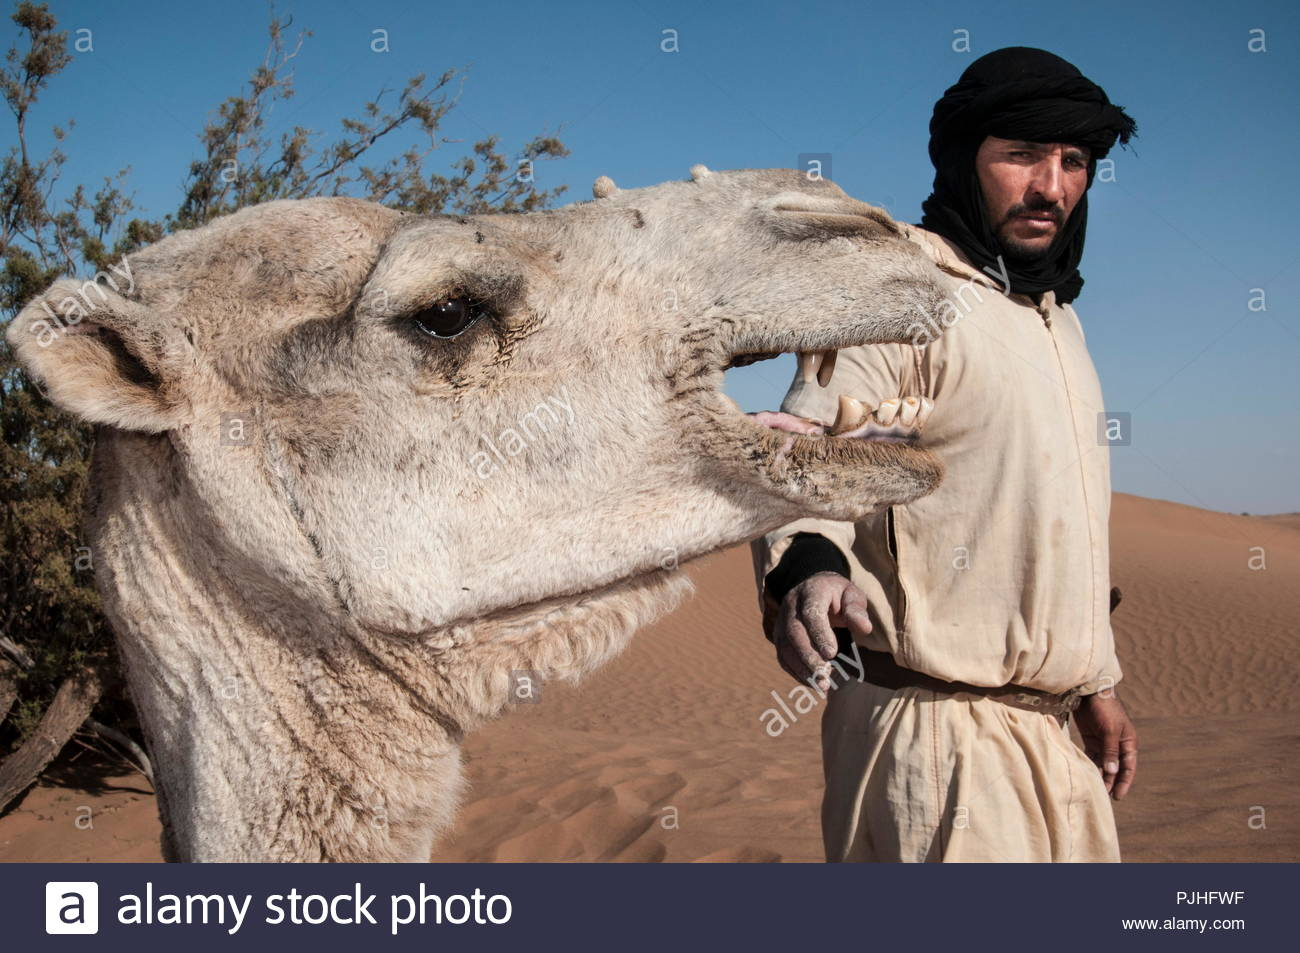 Morocco, Western Sahara, camel driver with his camel in the Saharian desert - Stock Image